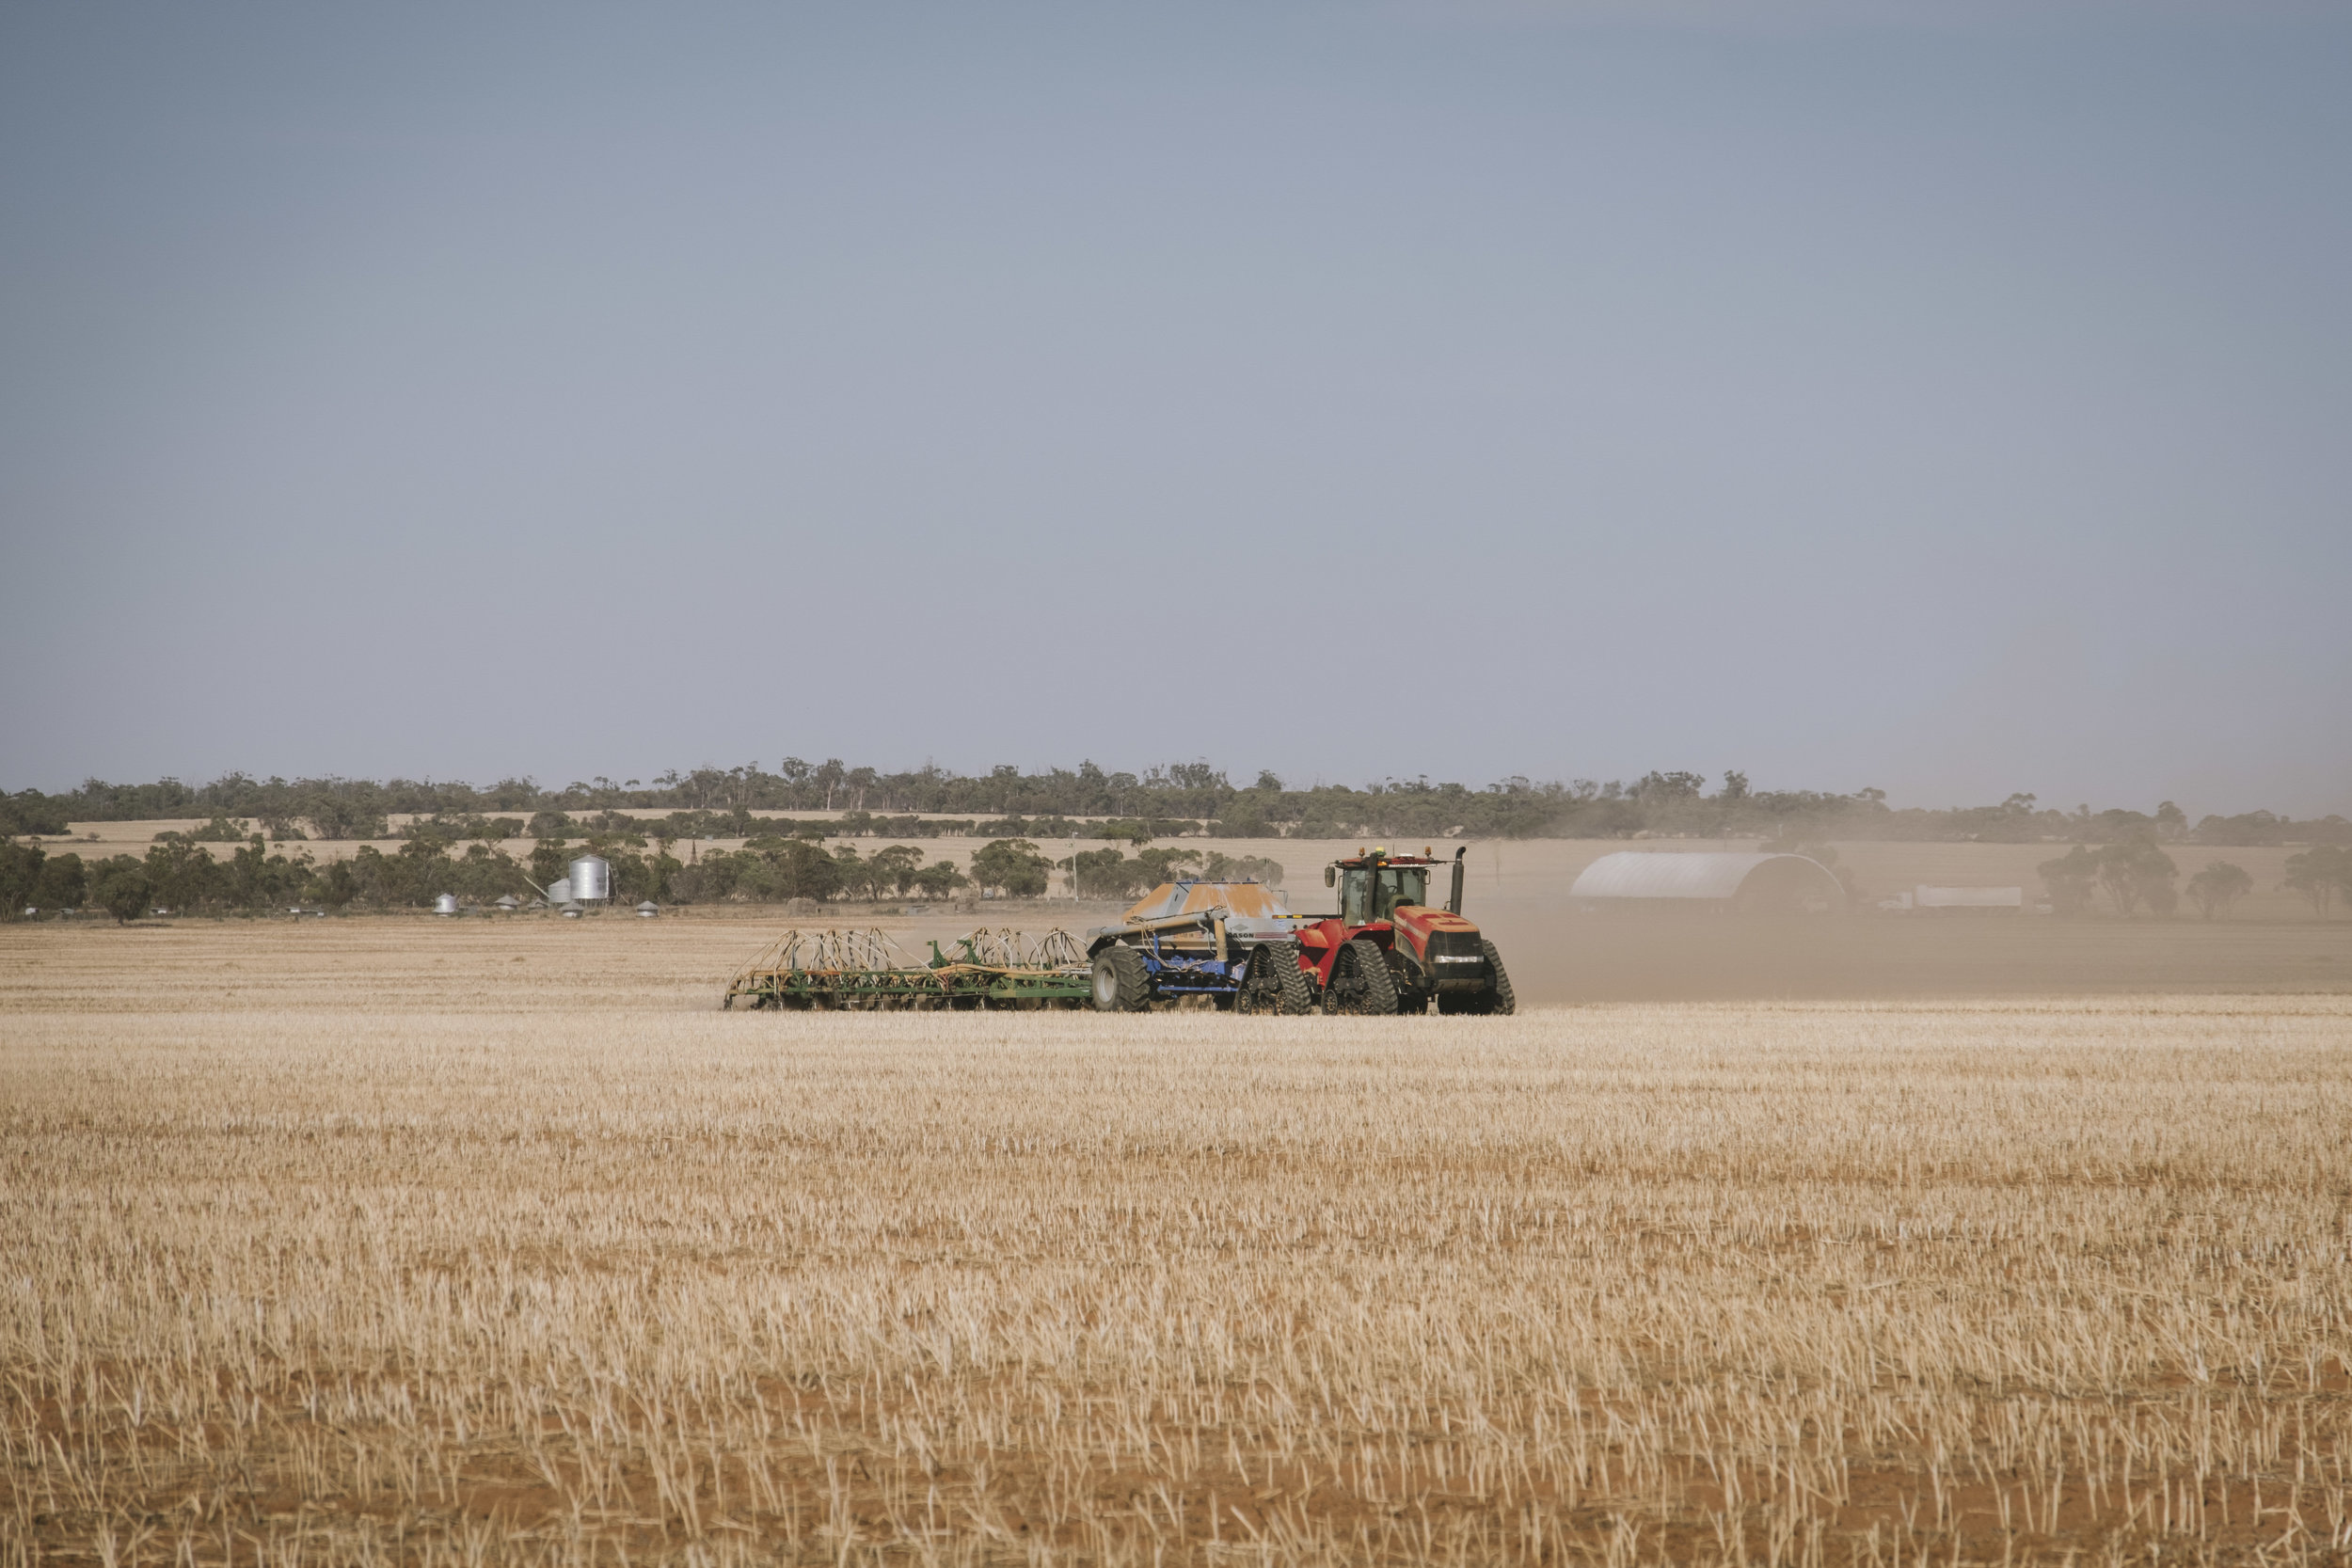 Angie Roe Photography Wheatbelt Rural Farm Landscape Seeding (1).jpg